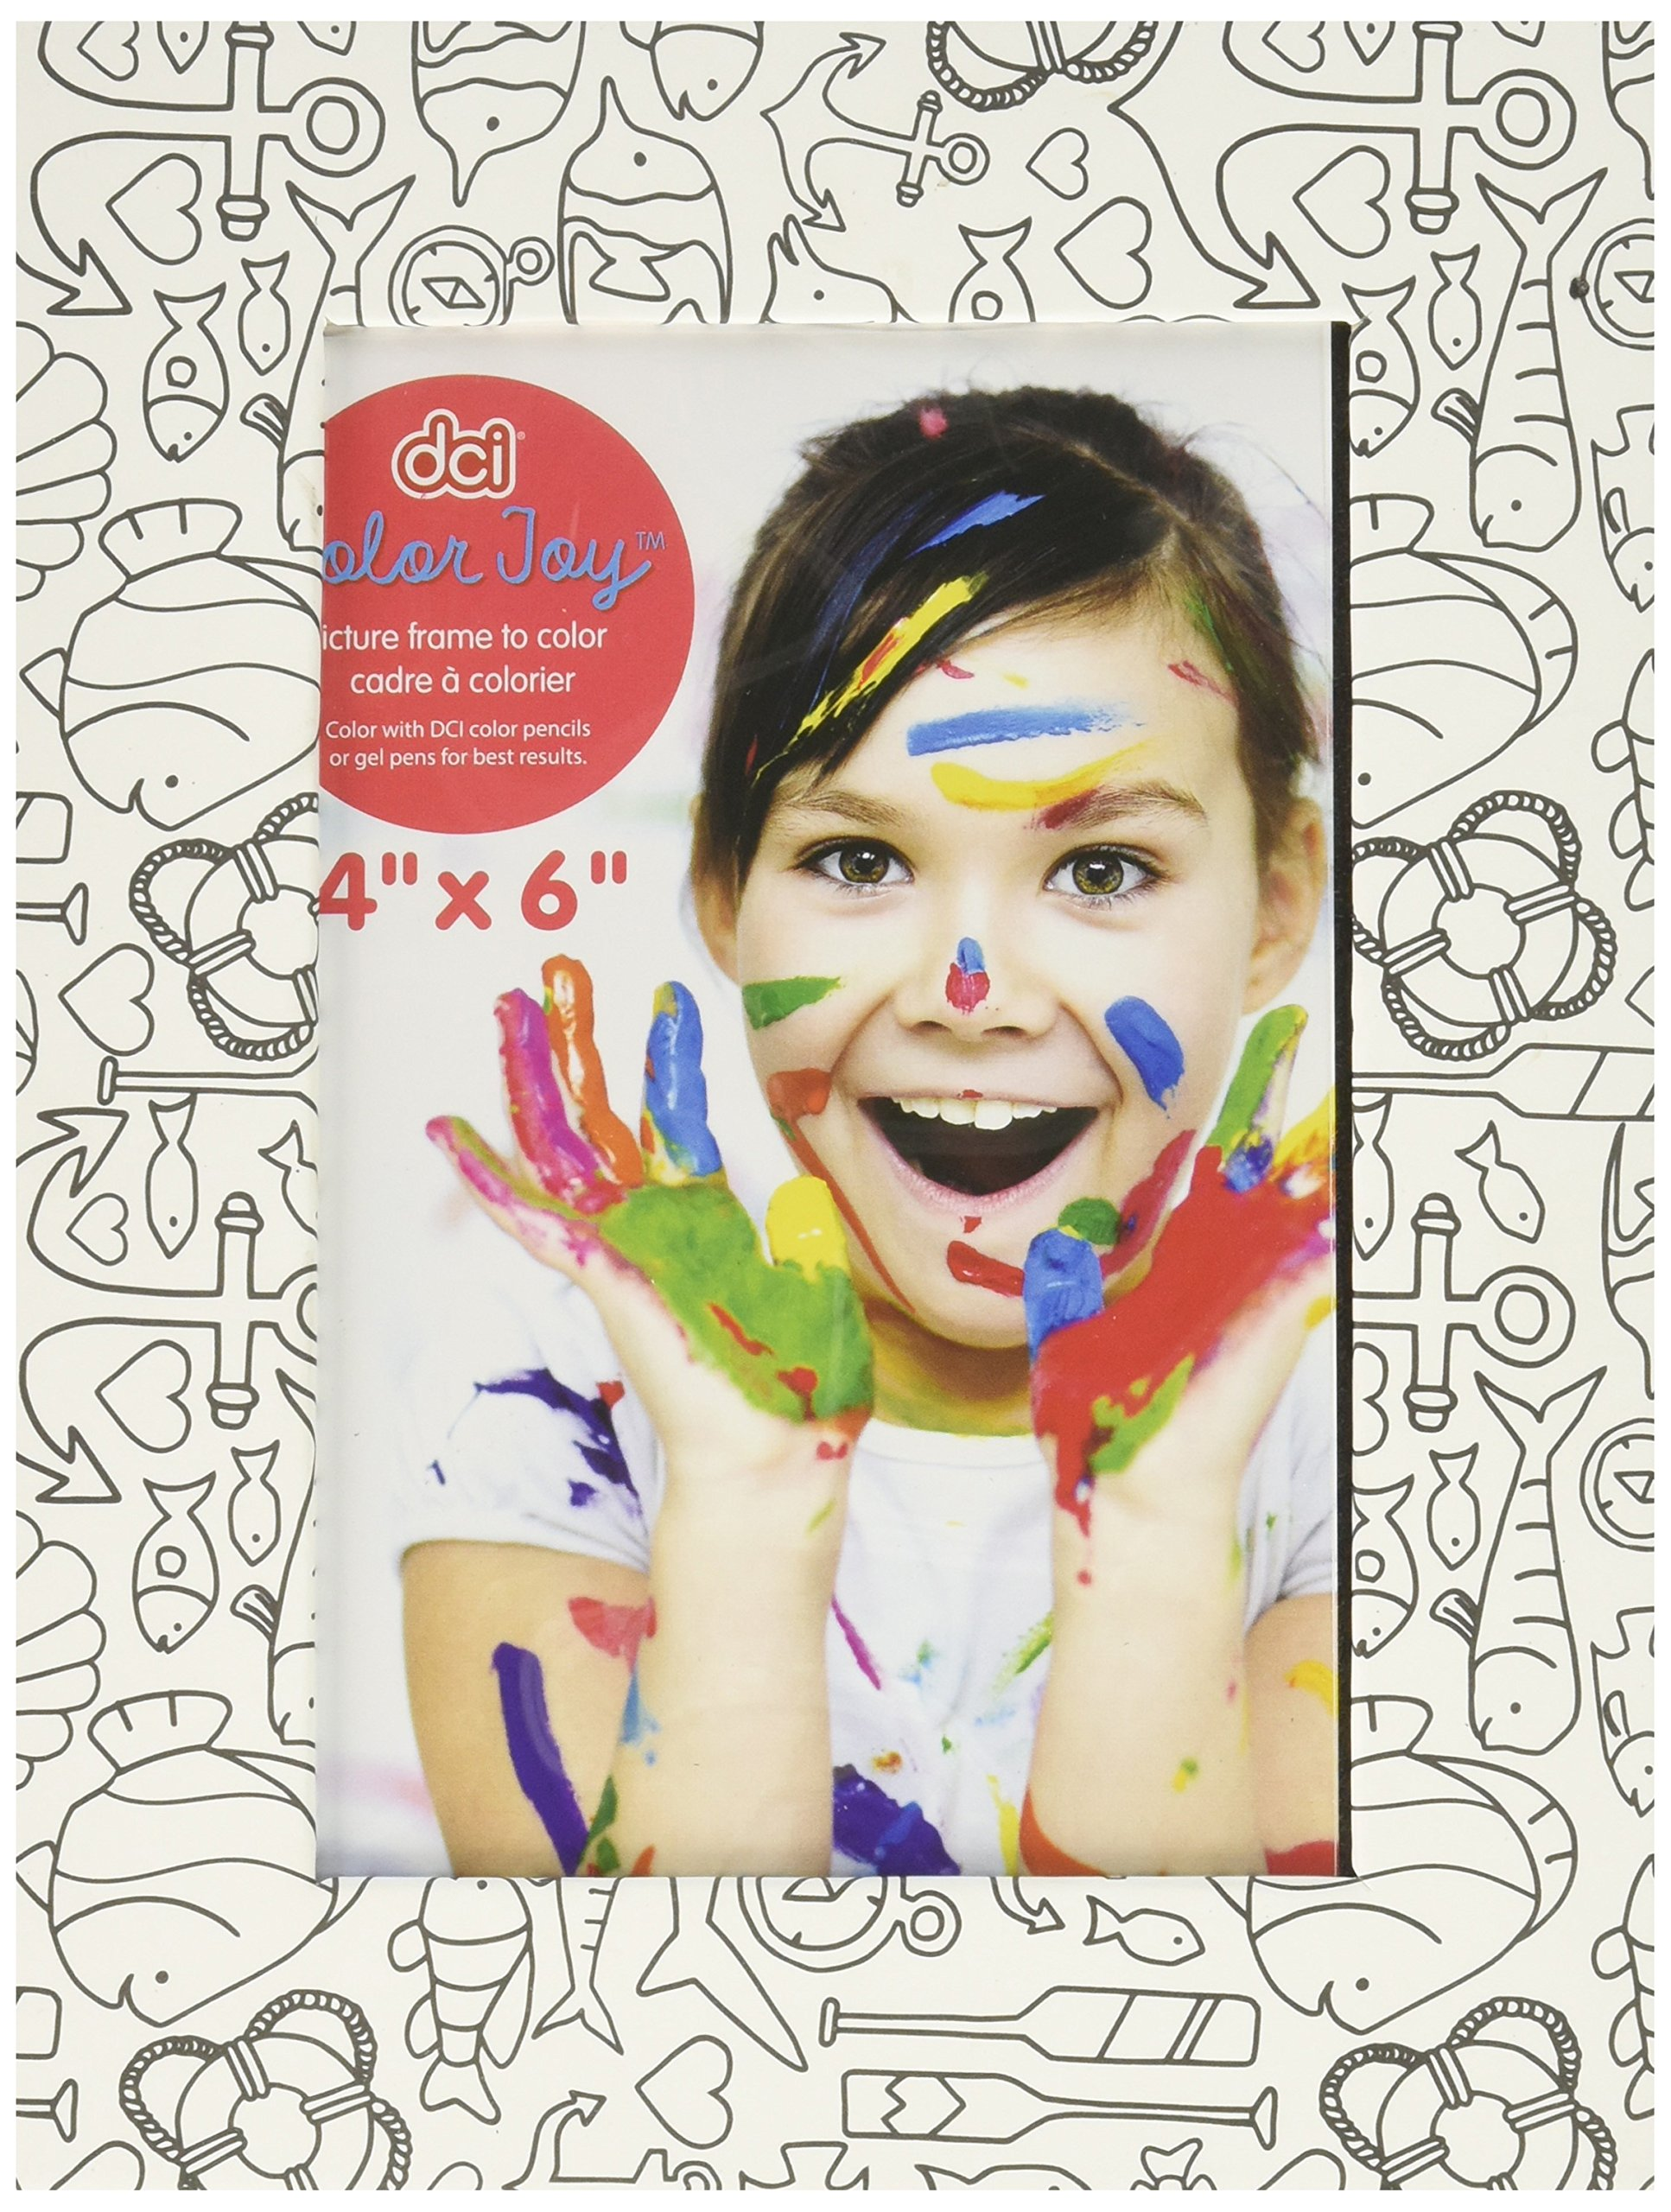 ColorJoy DCI Custom Picture Frame, DIY Crafts, Assorted Designs, 4'' x 6'' Insert Size, Customize Your Own Picture Frame